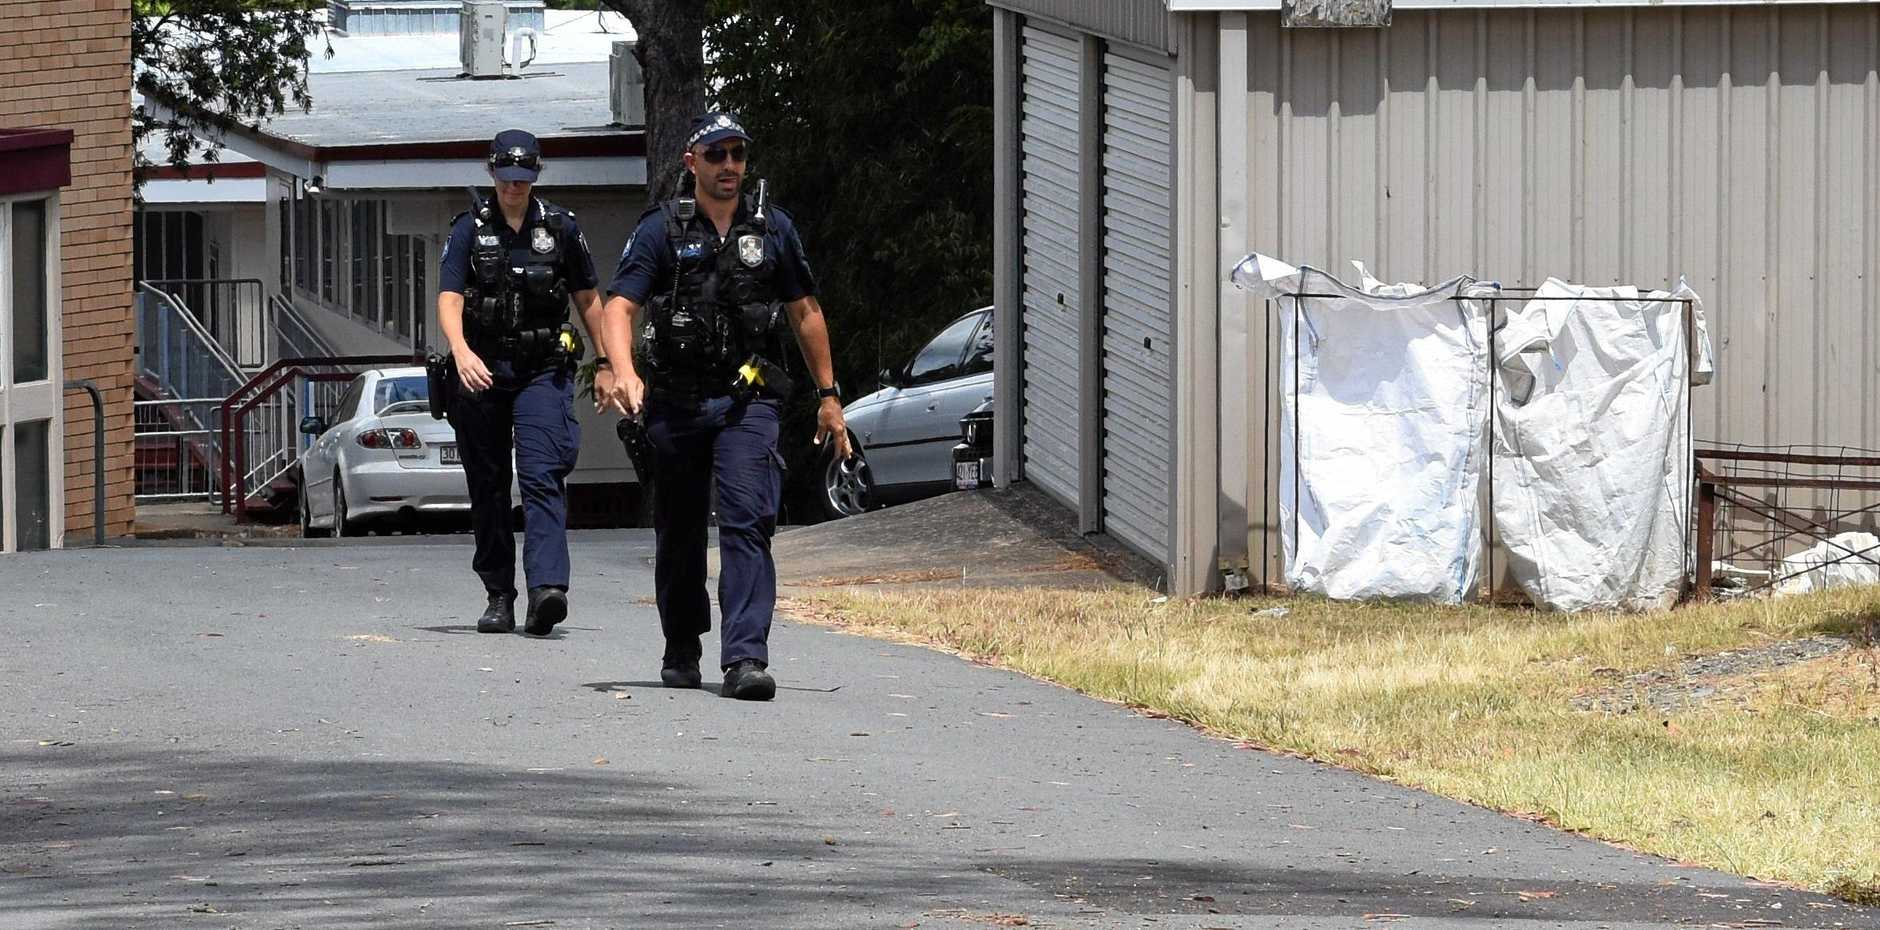 Gympie Police search the grounds of nearby schools for any clues or evidence.